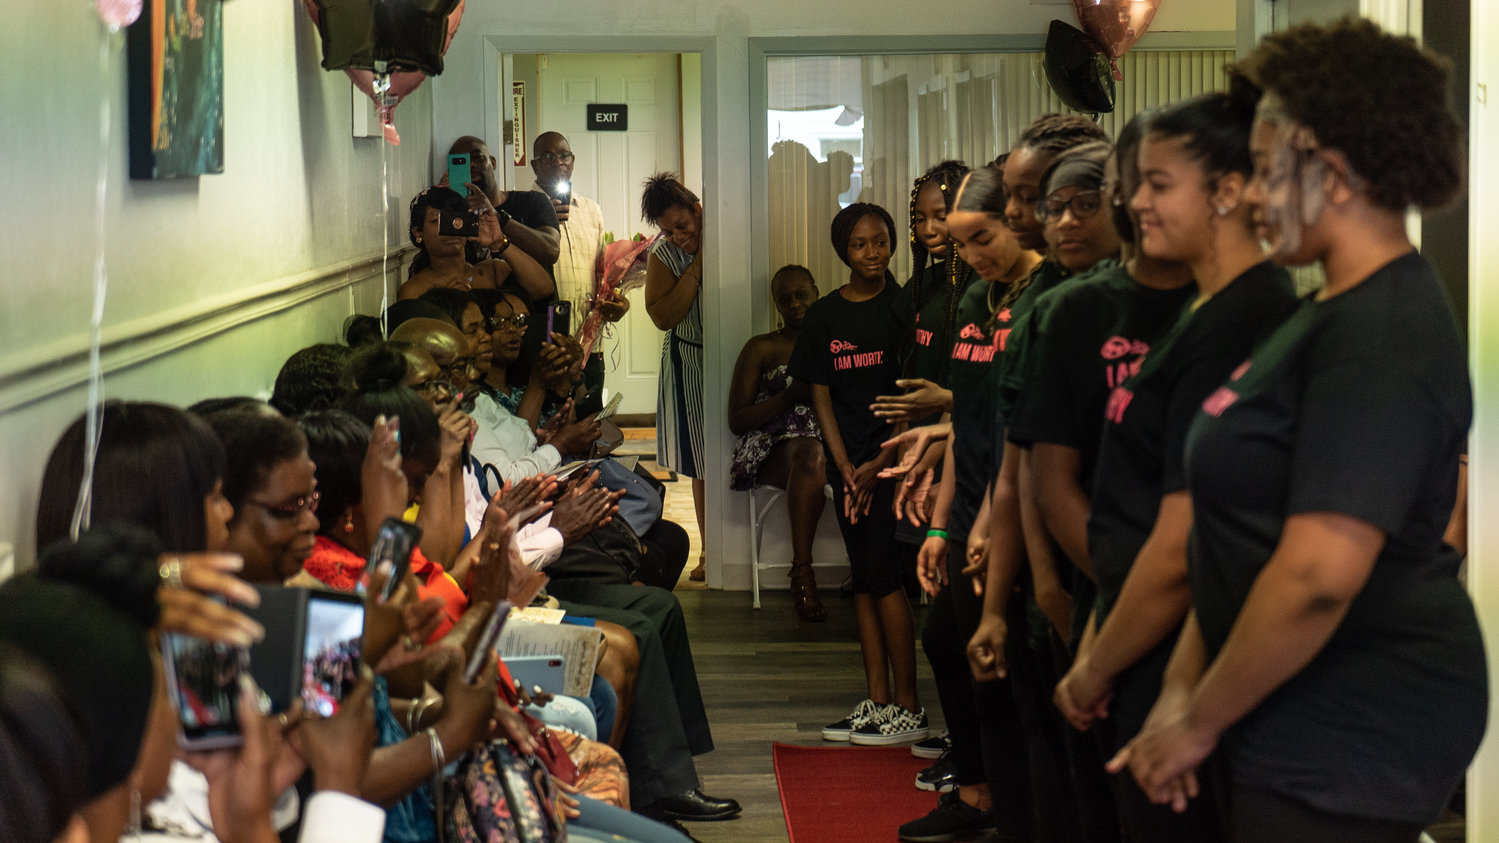 A group of girls and their parents and guardians filled 3D's Community Empowerment Center on Seaman Avenue on June 8 for the second annual Red Carpet Ceremony hosted by the local nonprofit organization Save Our Daughters Too.